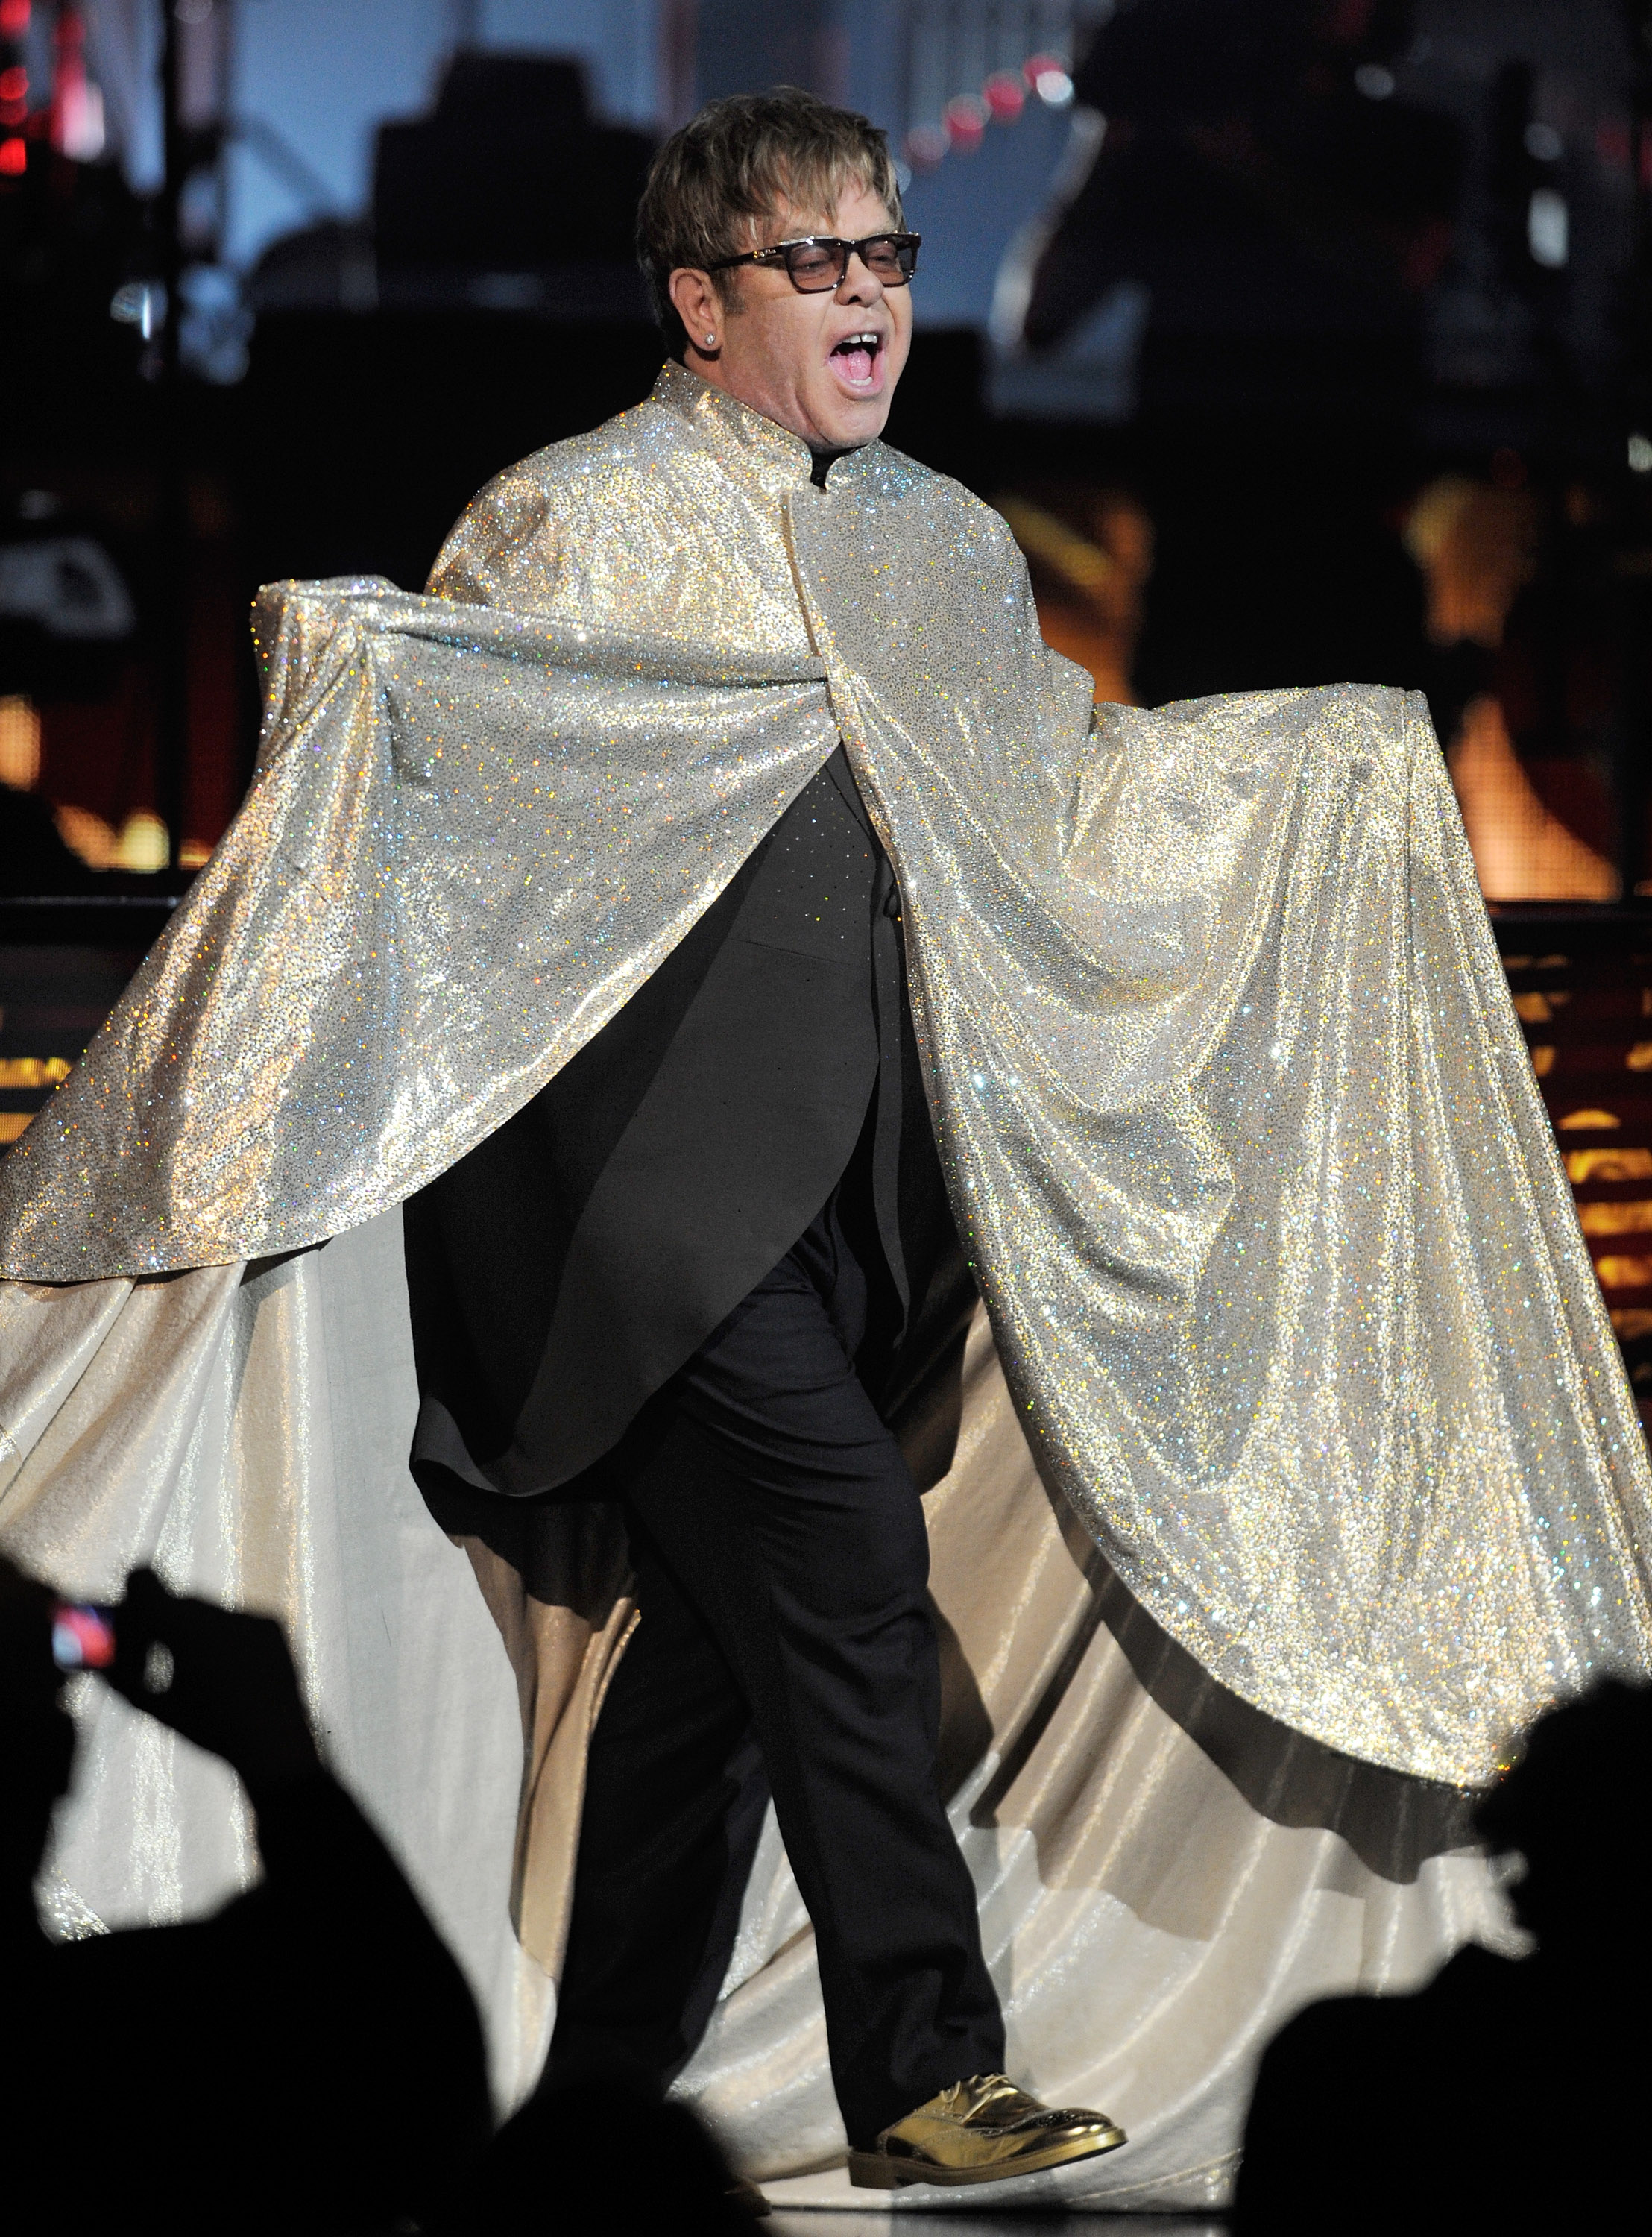 Is it a robe? A cape? It doesn't matter, and I want one in every color.